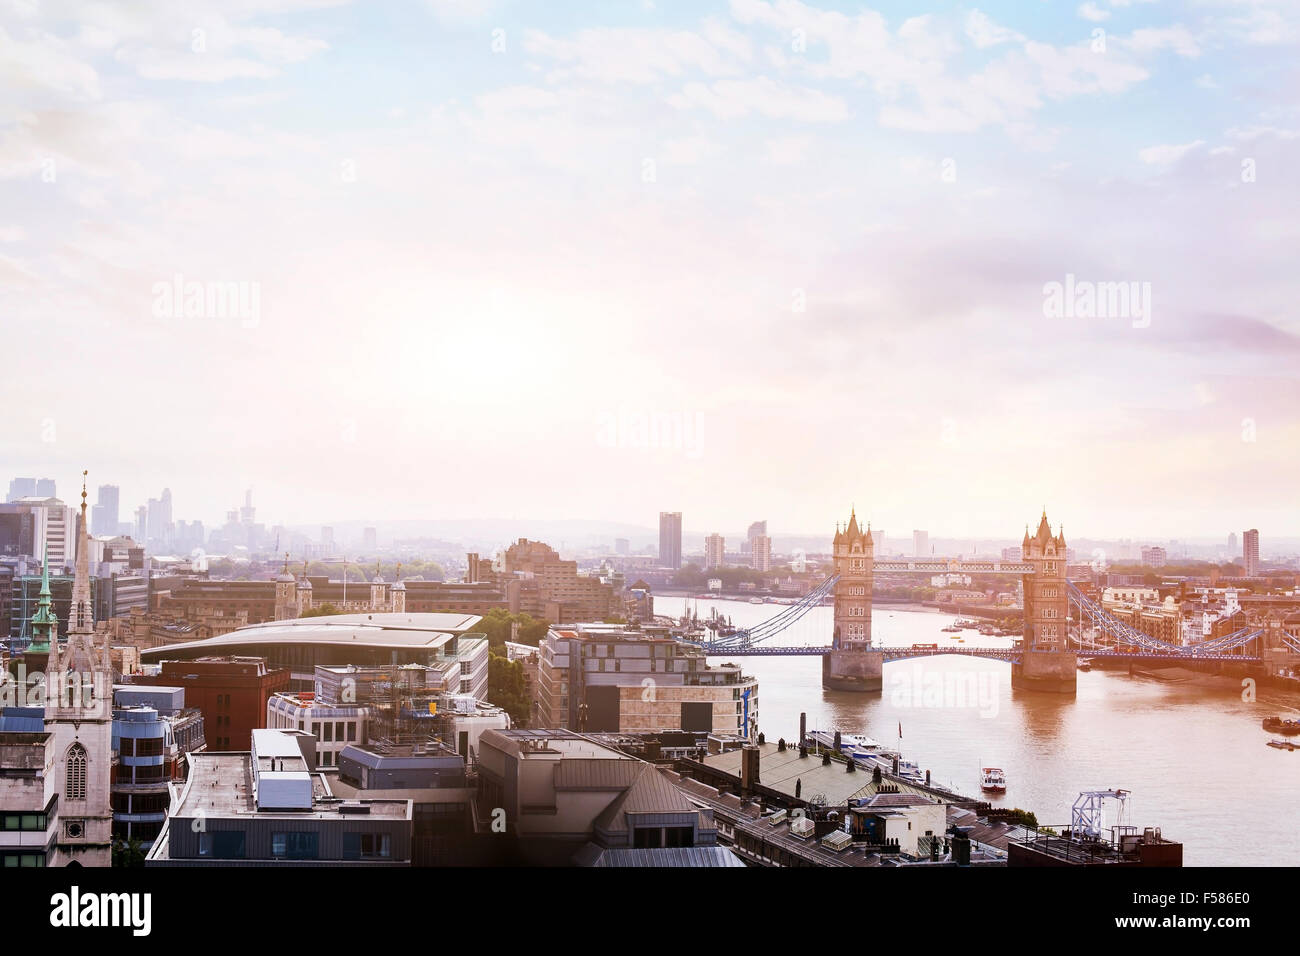 panoramic view of London, sunrise over Tower Bridge - Stock Image